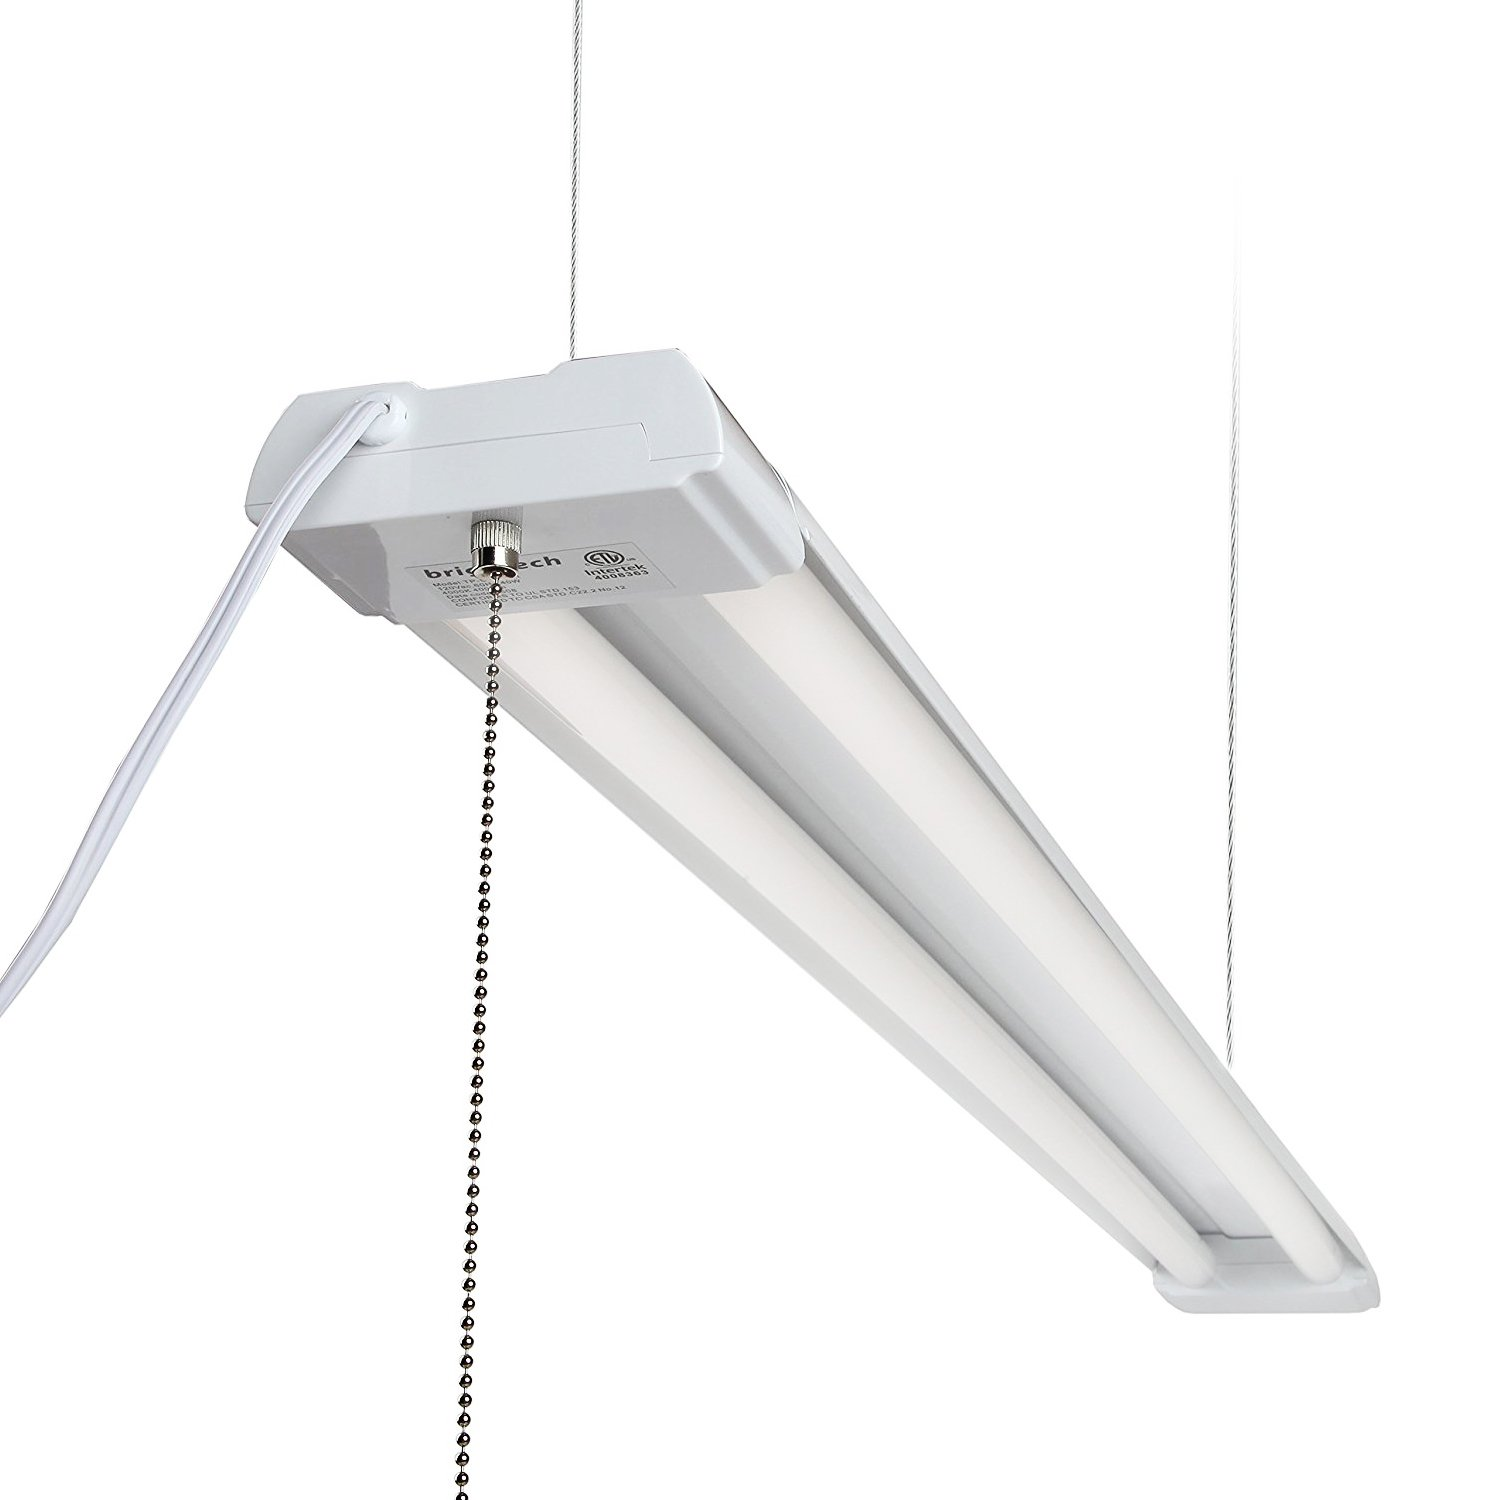 Brightech lightpro led shop light 20 year life 4ft 40 watt brightech lightpro led shop light 20 year life 4ft 40 watt commercial grade workbench utility ceiling fixture for garage office warehouse equivalent arubaitofo Image collections